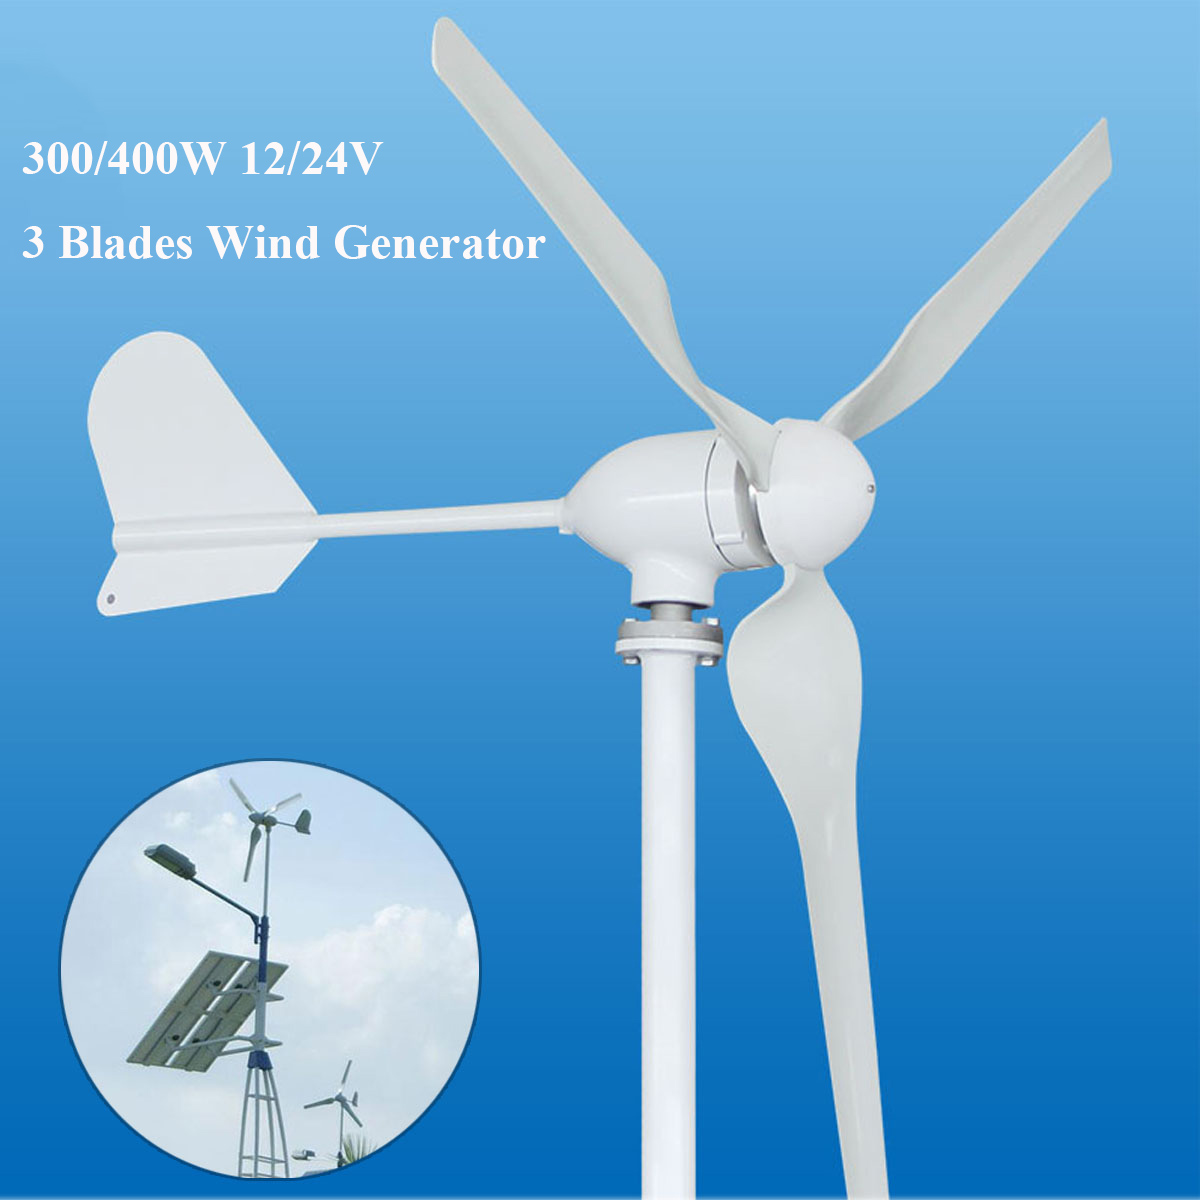 New Hot Sale 300/400W 12/24V M3 Wind Generator Automatic Adjustable Generator Fit For Home Or Marine Use For Anniversary Sale